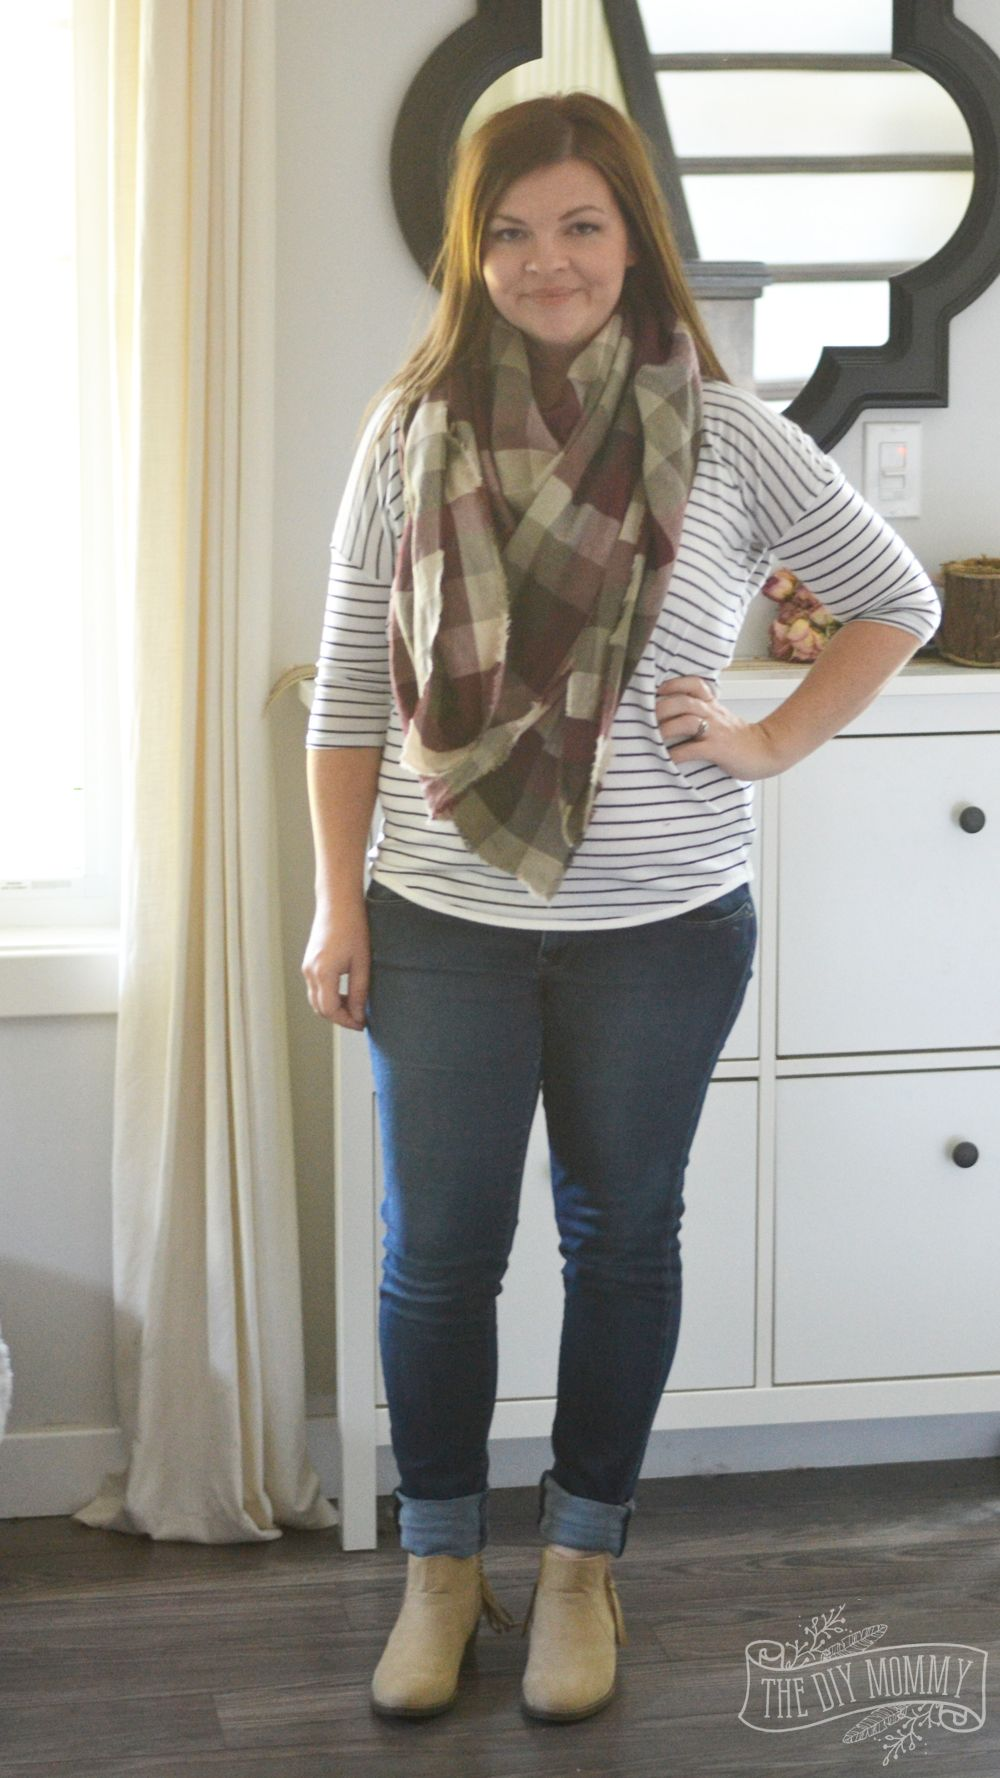 7e9499433530c Petite Curvy Mom Style: Blanket scarf, striped tee, jeans, tan booties.